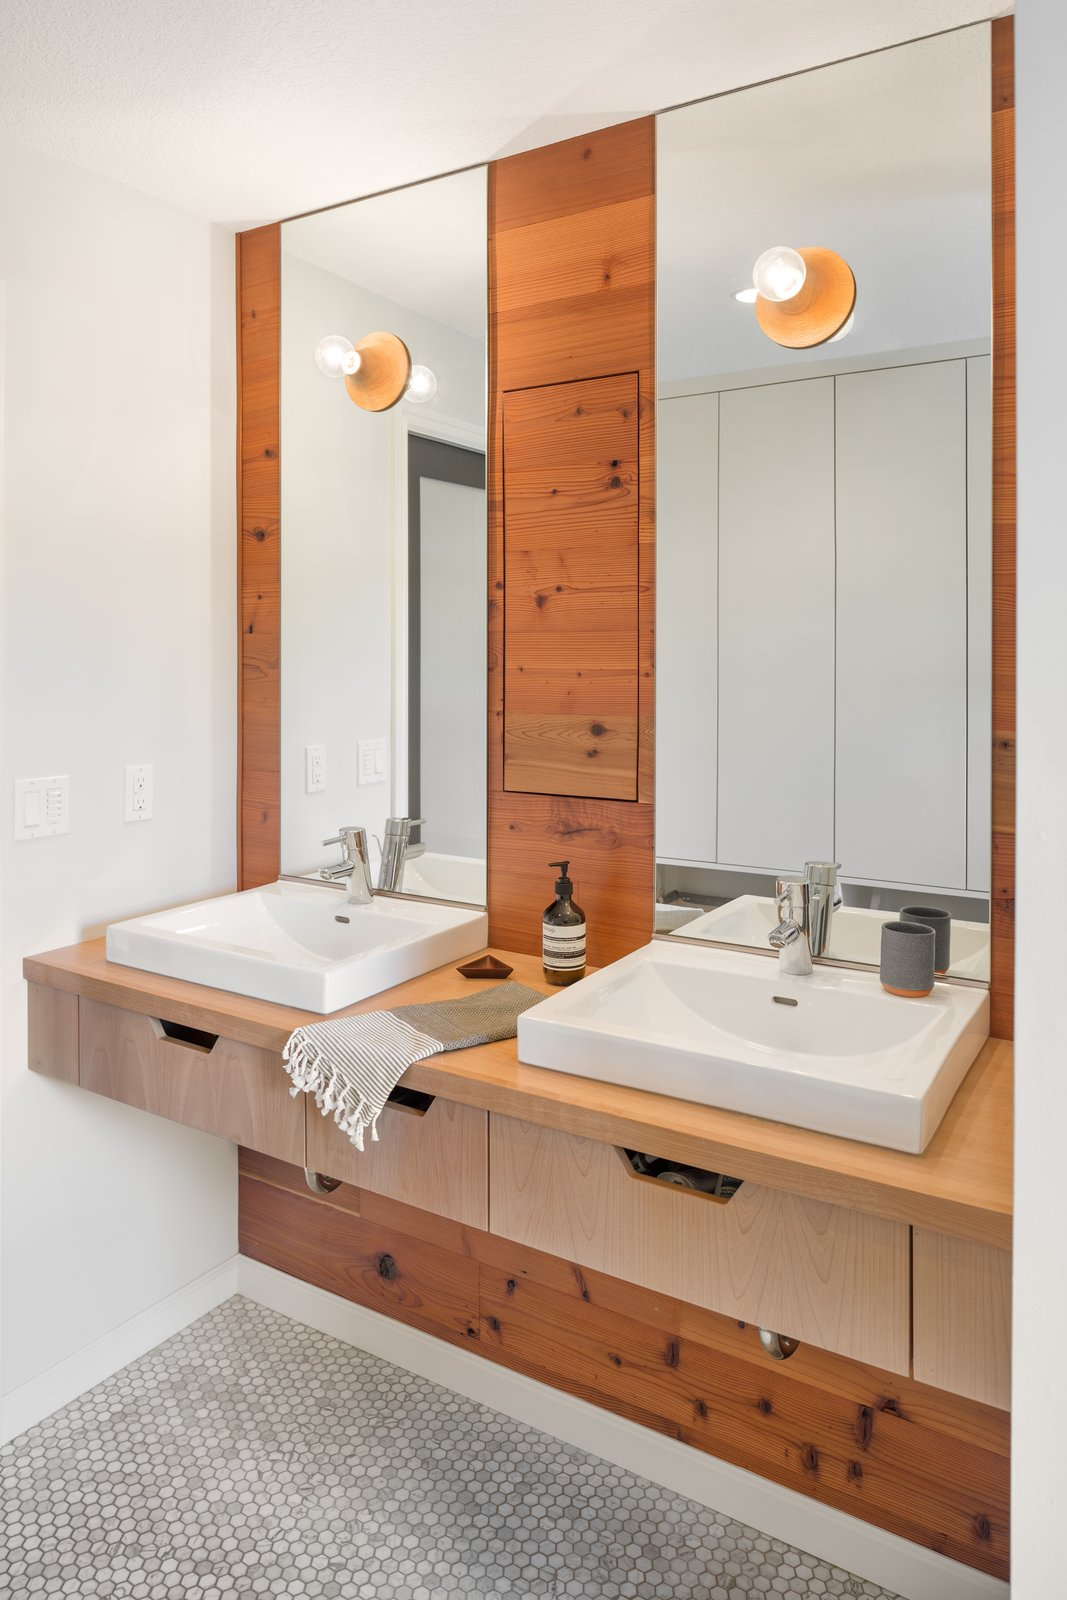 Mixed materials create a sleek, earthen inspired vanity  Tagged: Light Hardwood Floor and Bath Room.  Hurst Avenue by Guggenheim Architecture + Design Studio